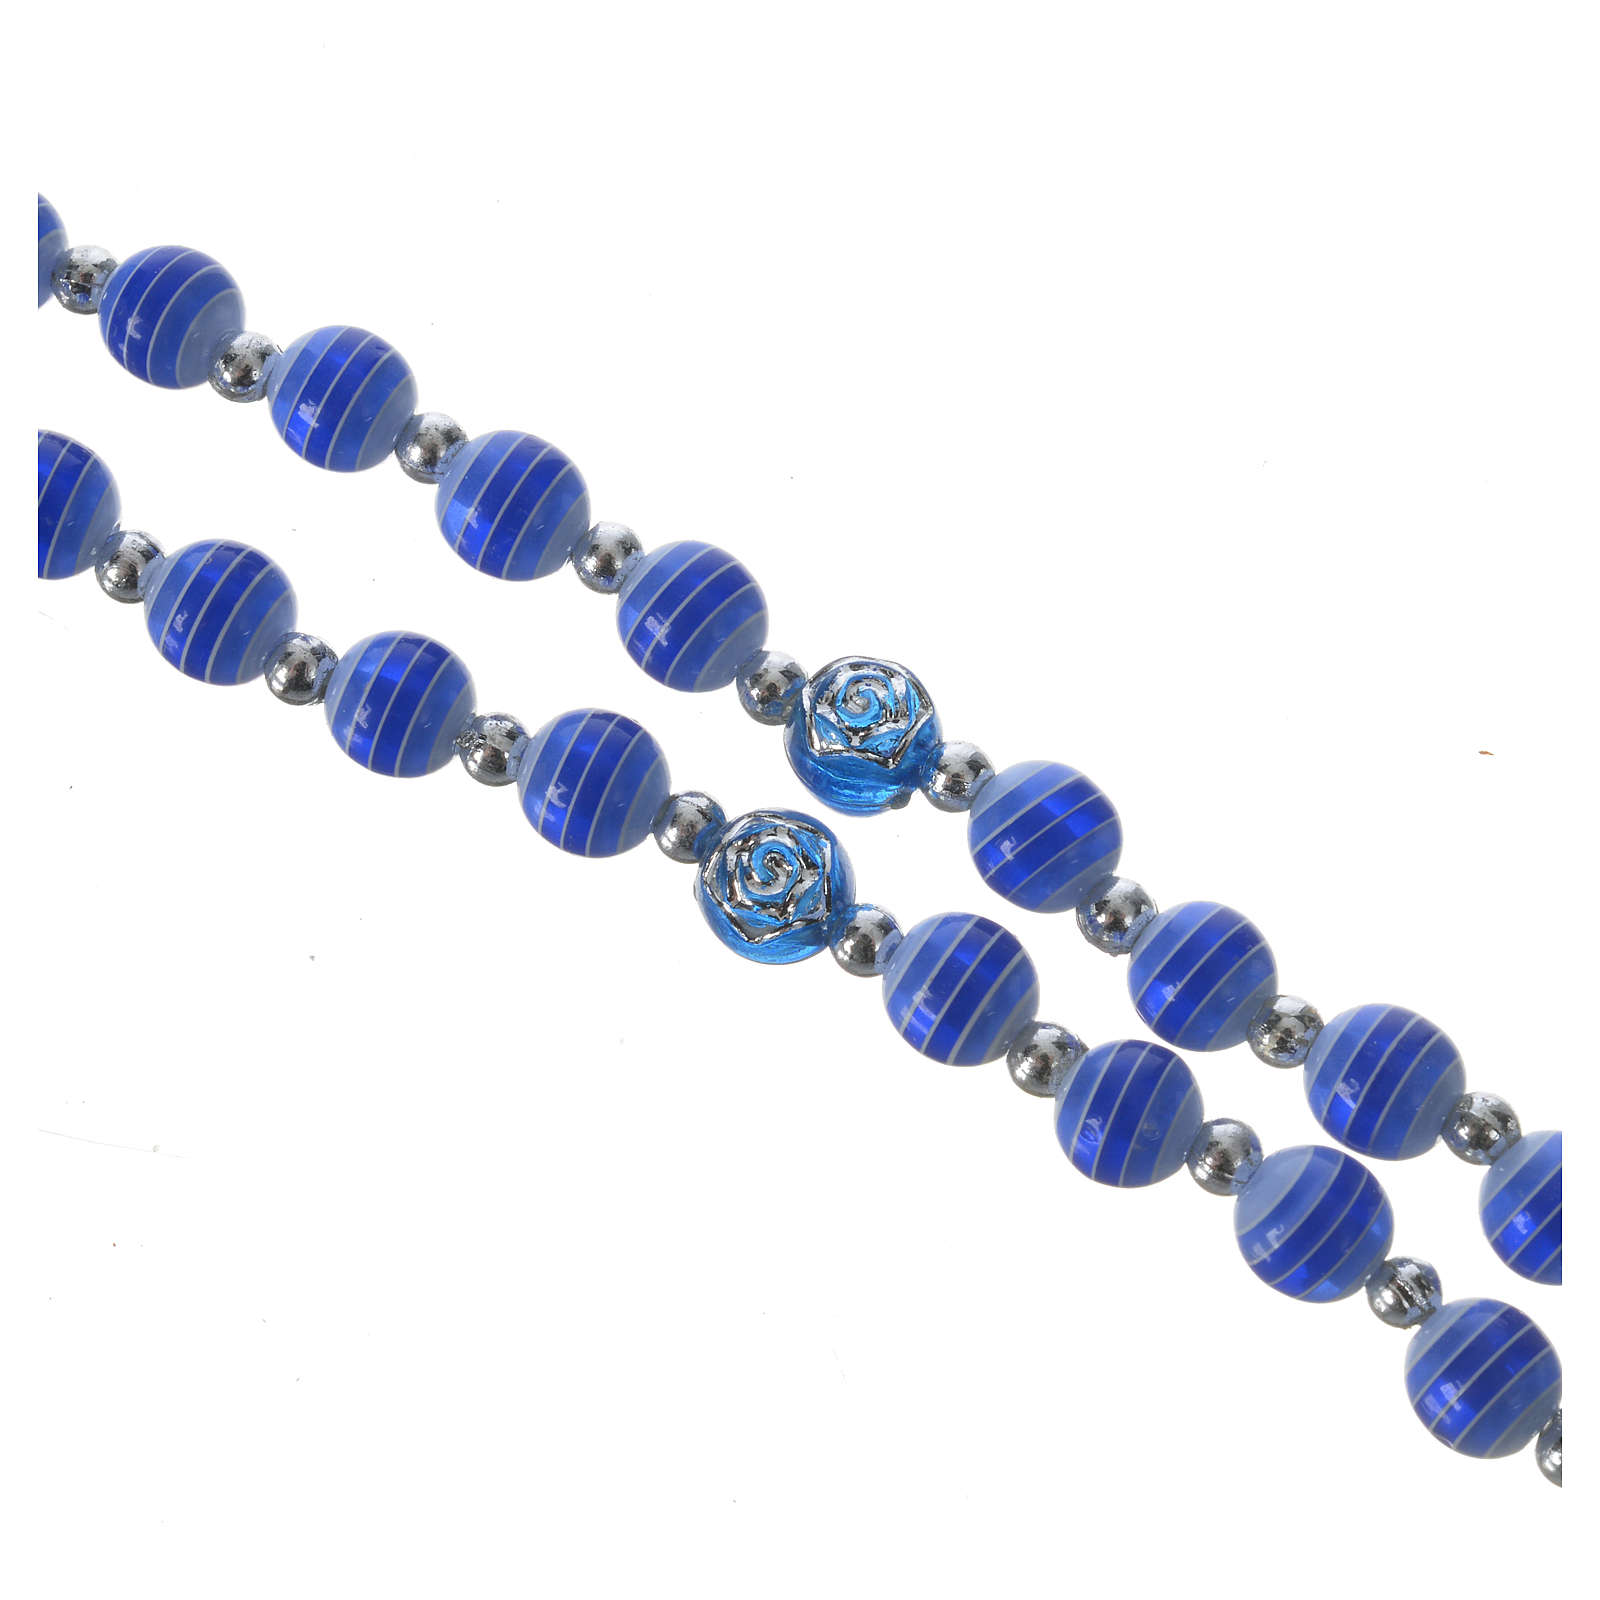 Rosary beads in blue resin, 6mm Lourdes 4